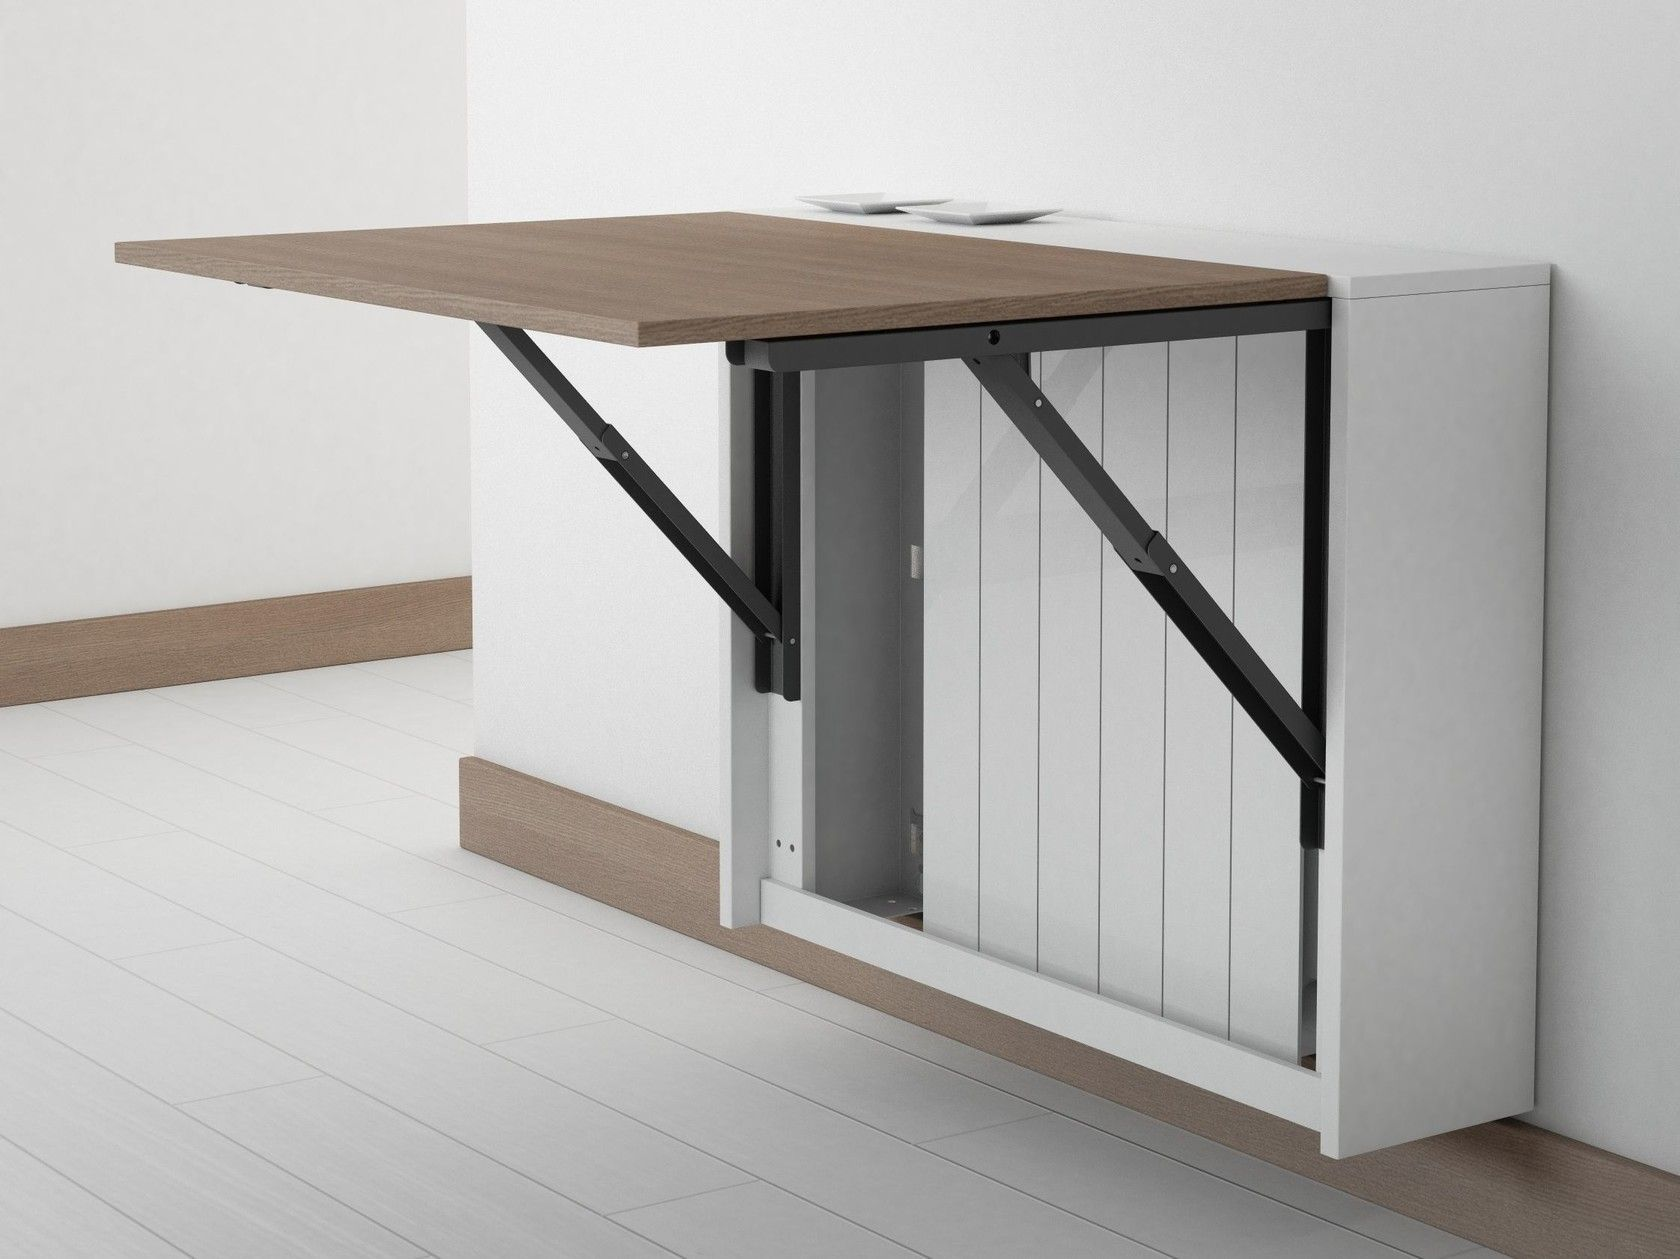 Wall mounted drop leaf table BLOCK